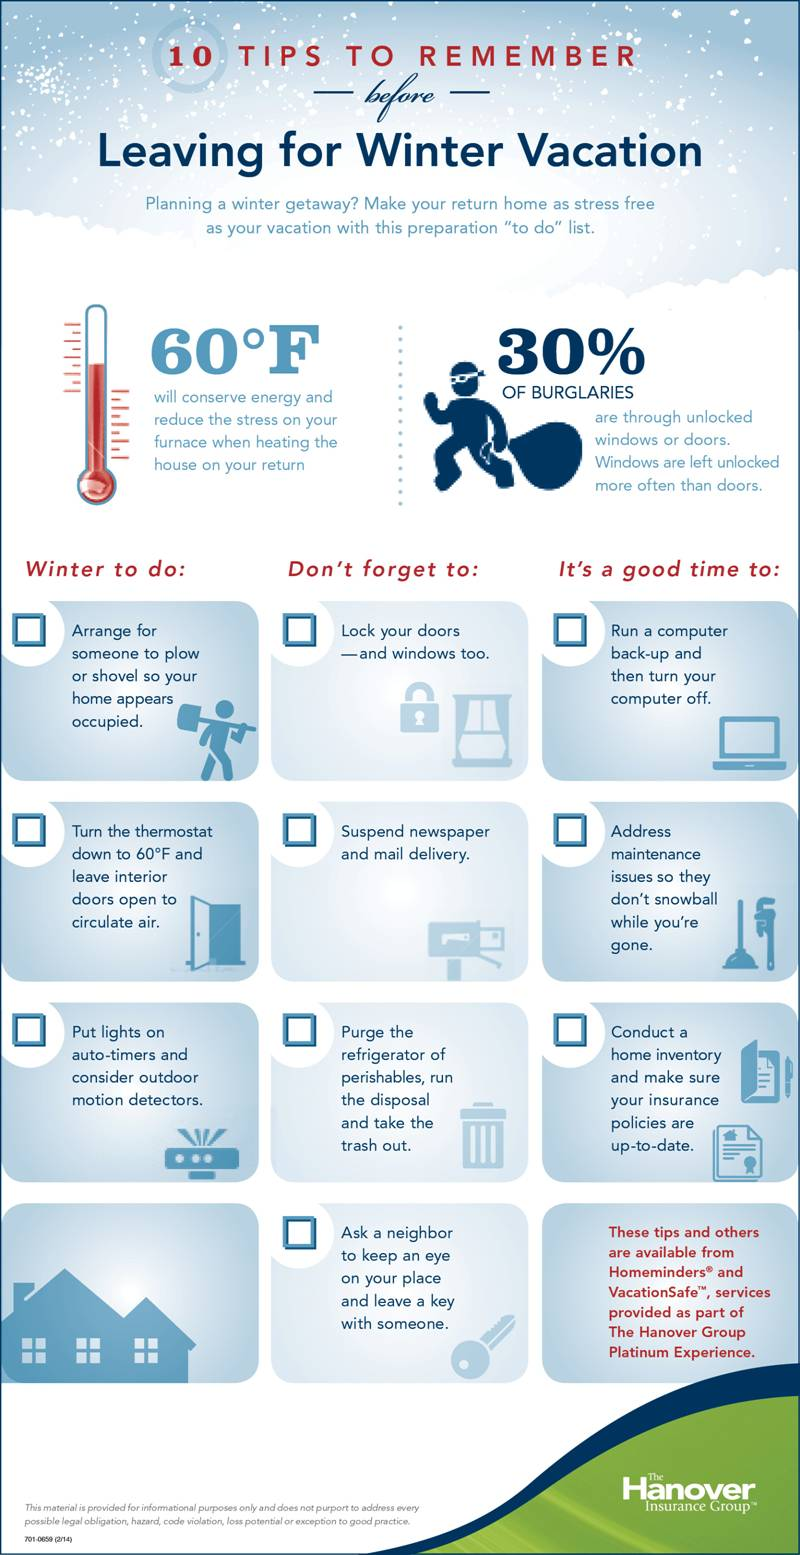 10 tips before leaving for winter vacation